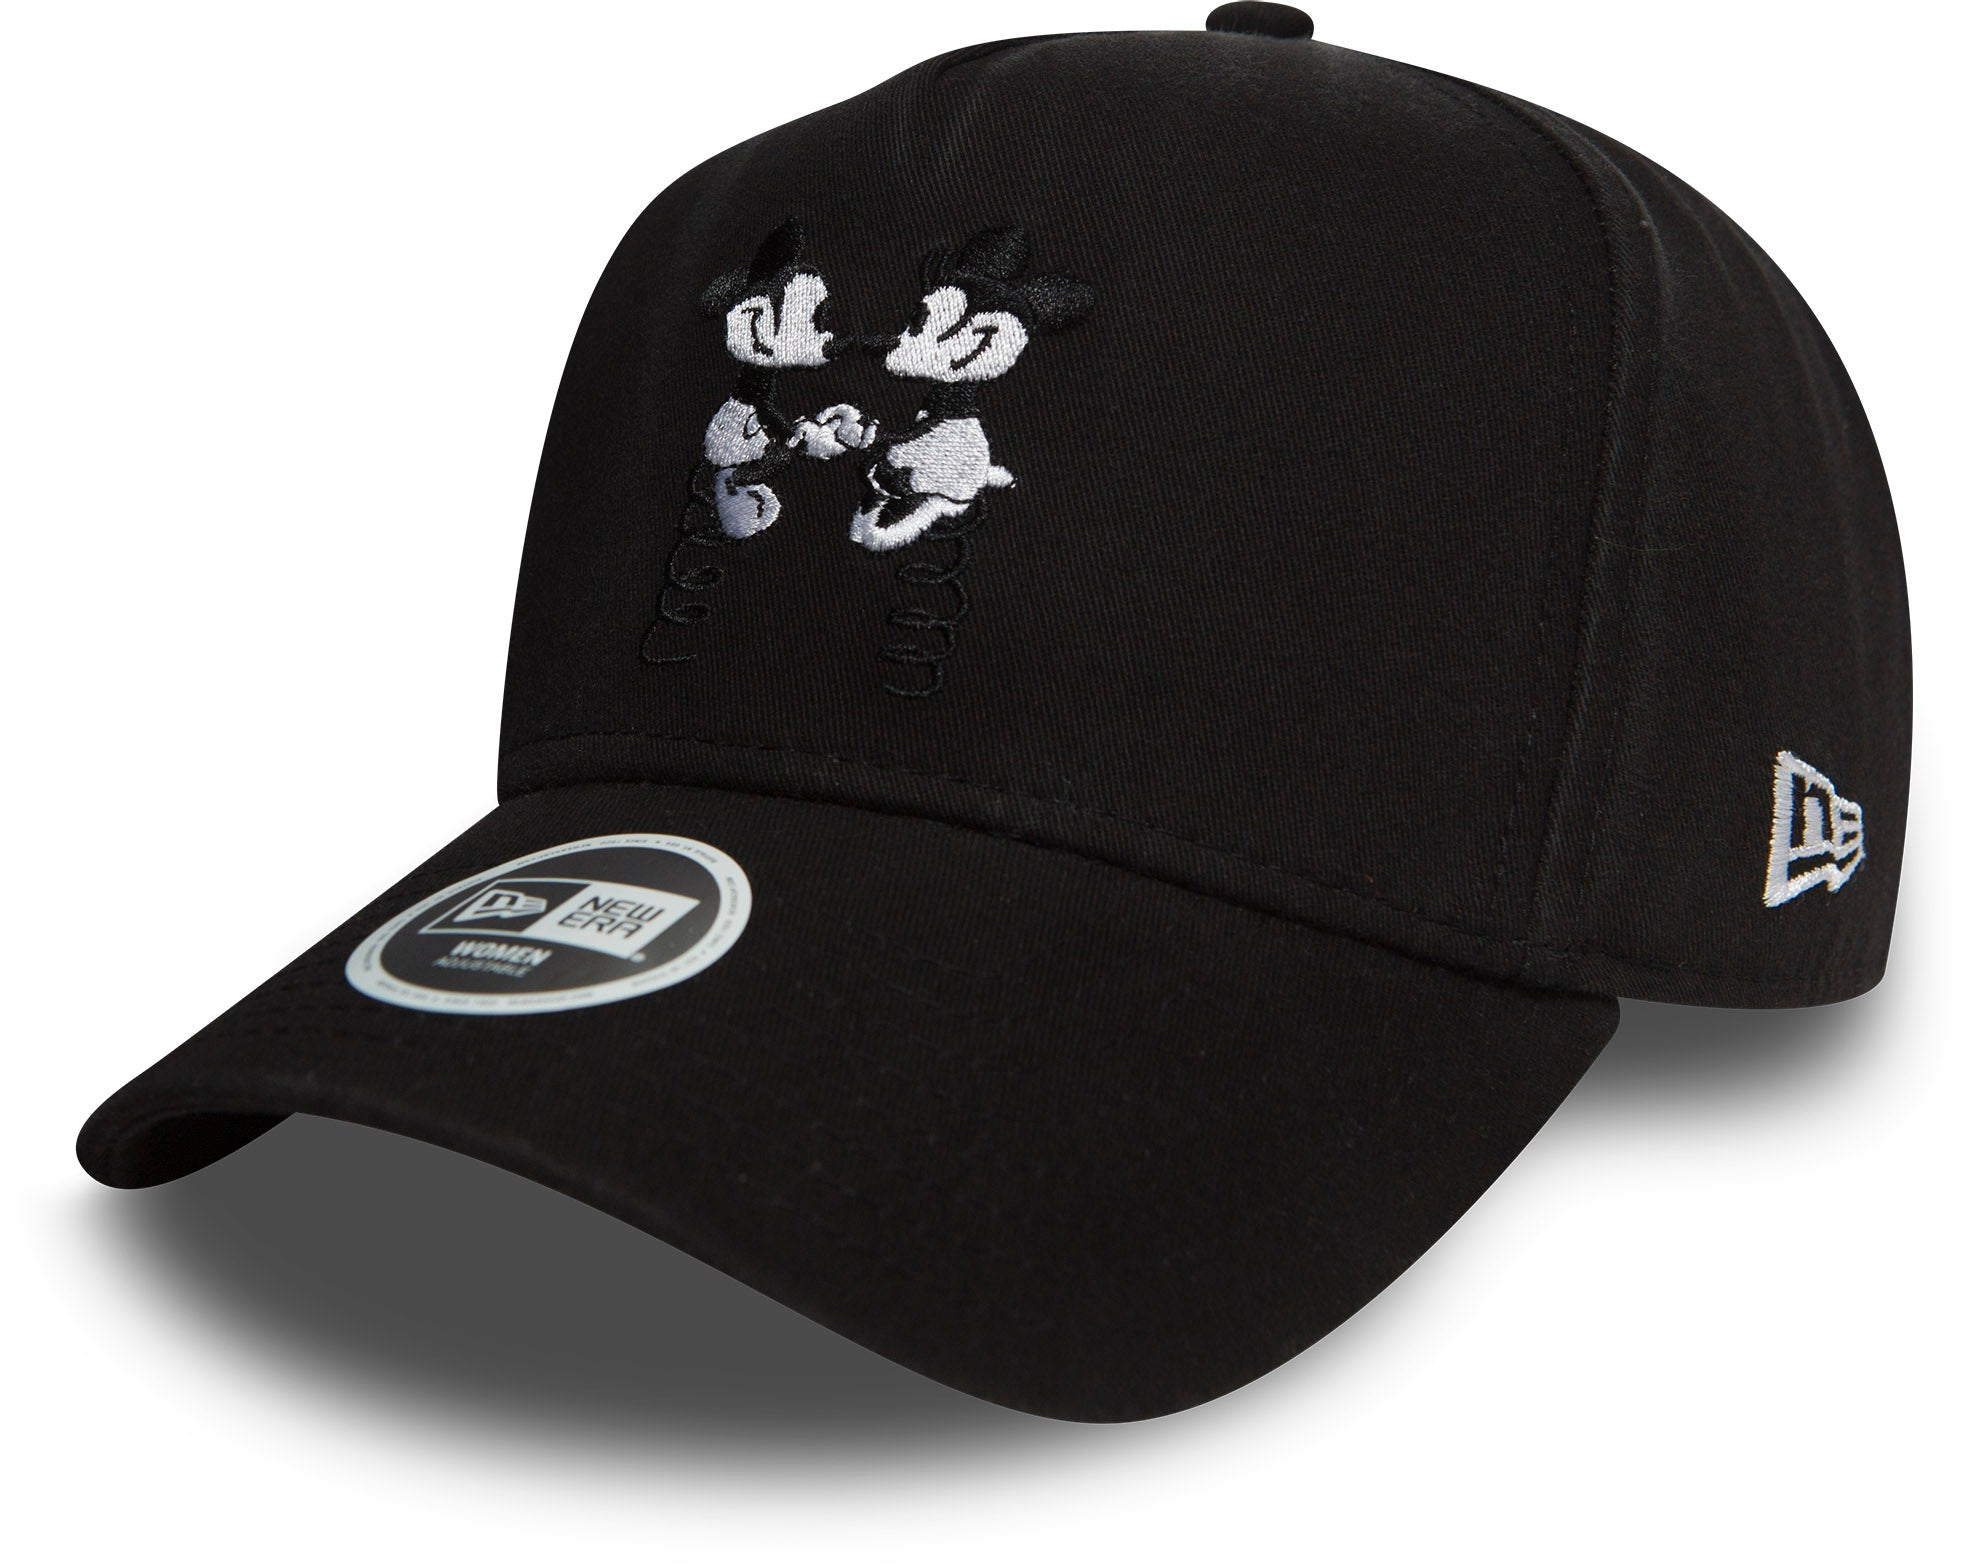 Minnie Mouse Womens New Era Disney Trucker Cap - Black – lovemycap 6ebedb8fcfc